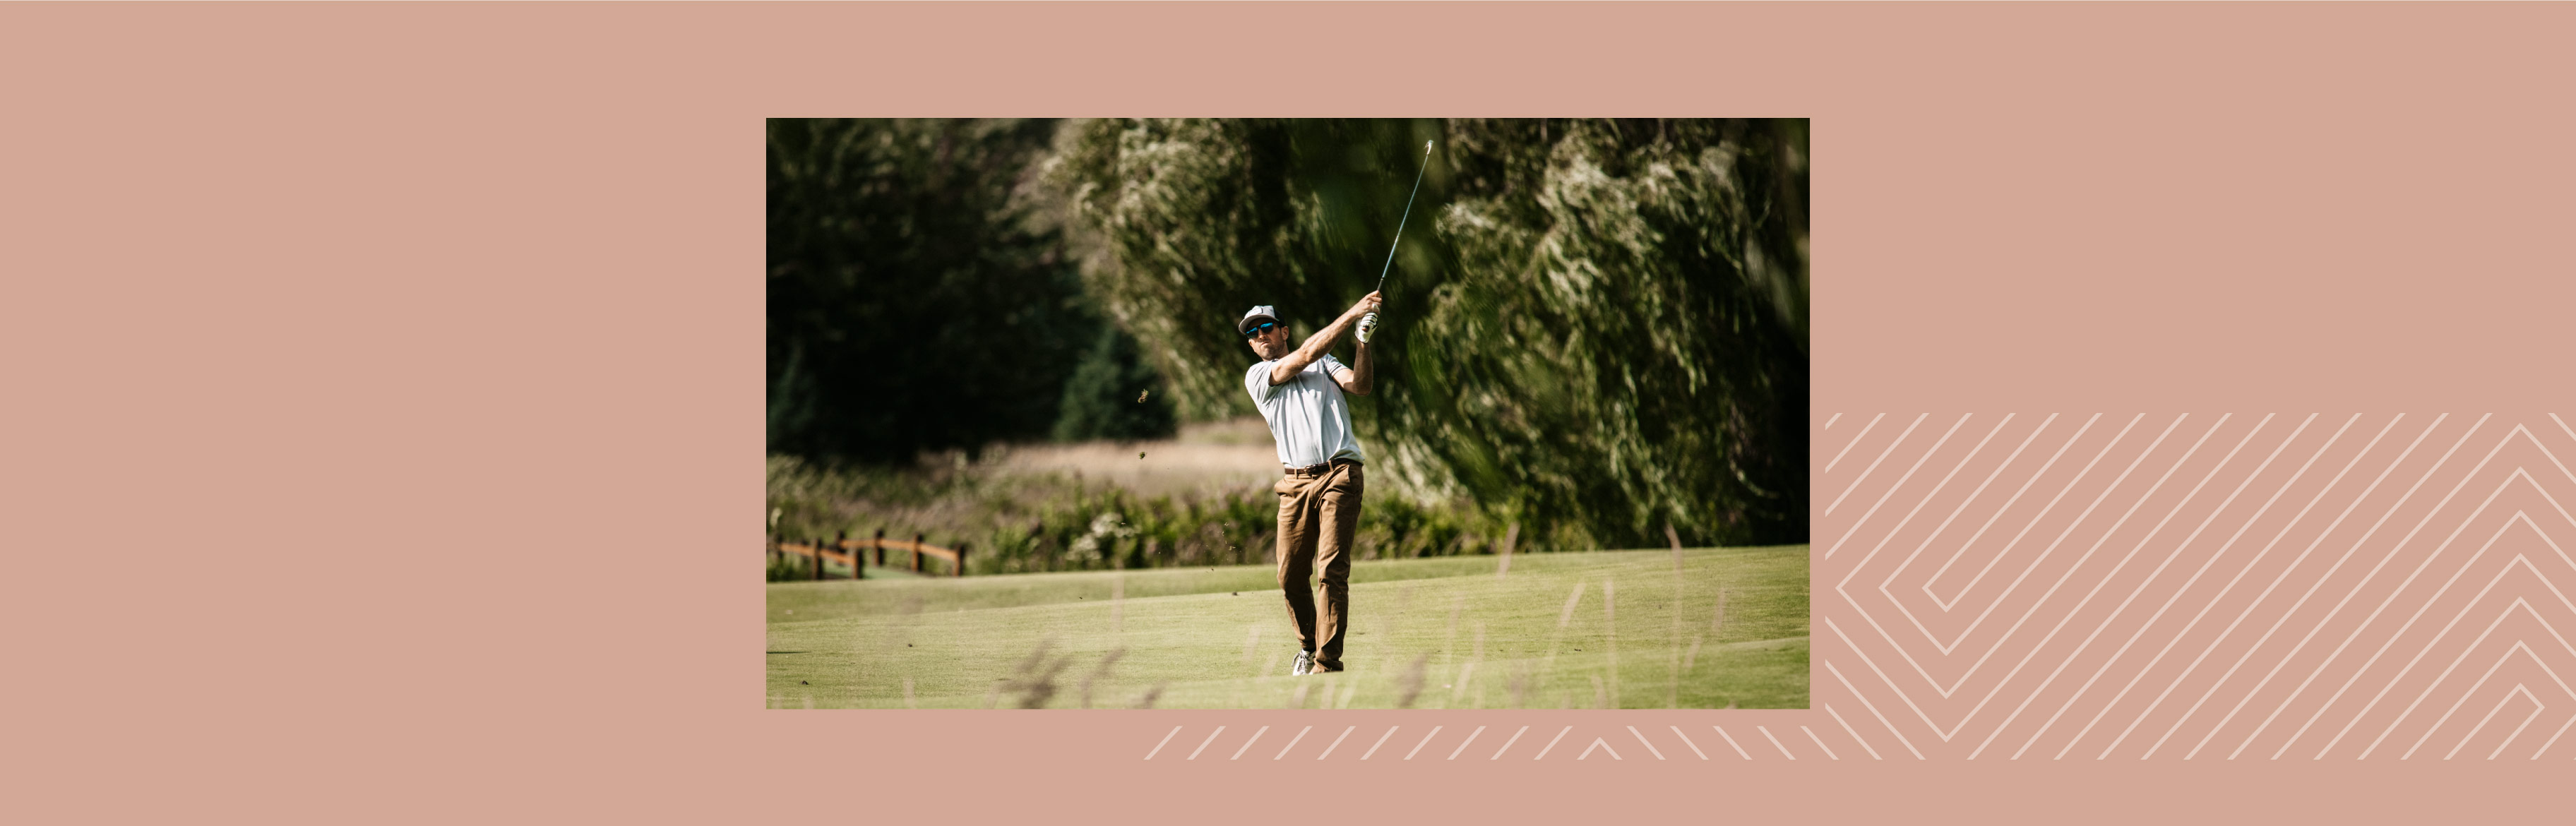 A man is playing Golf and wearing Maui Jim sunglasses